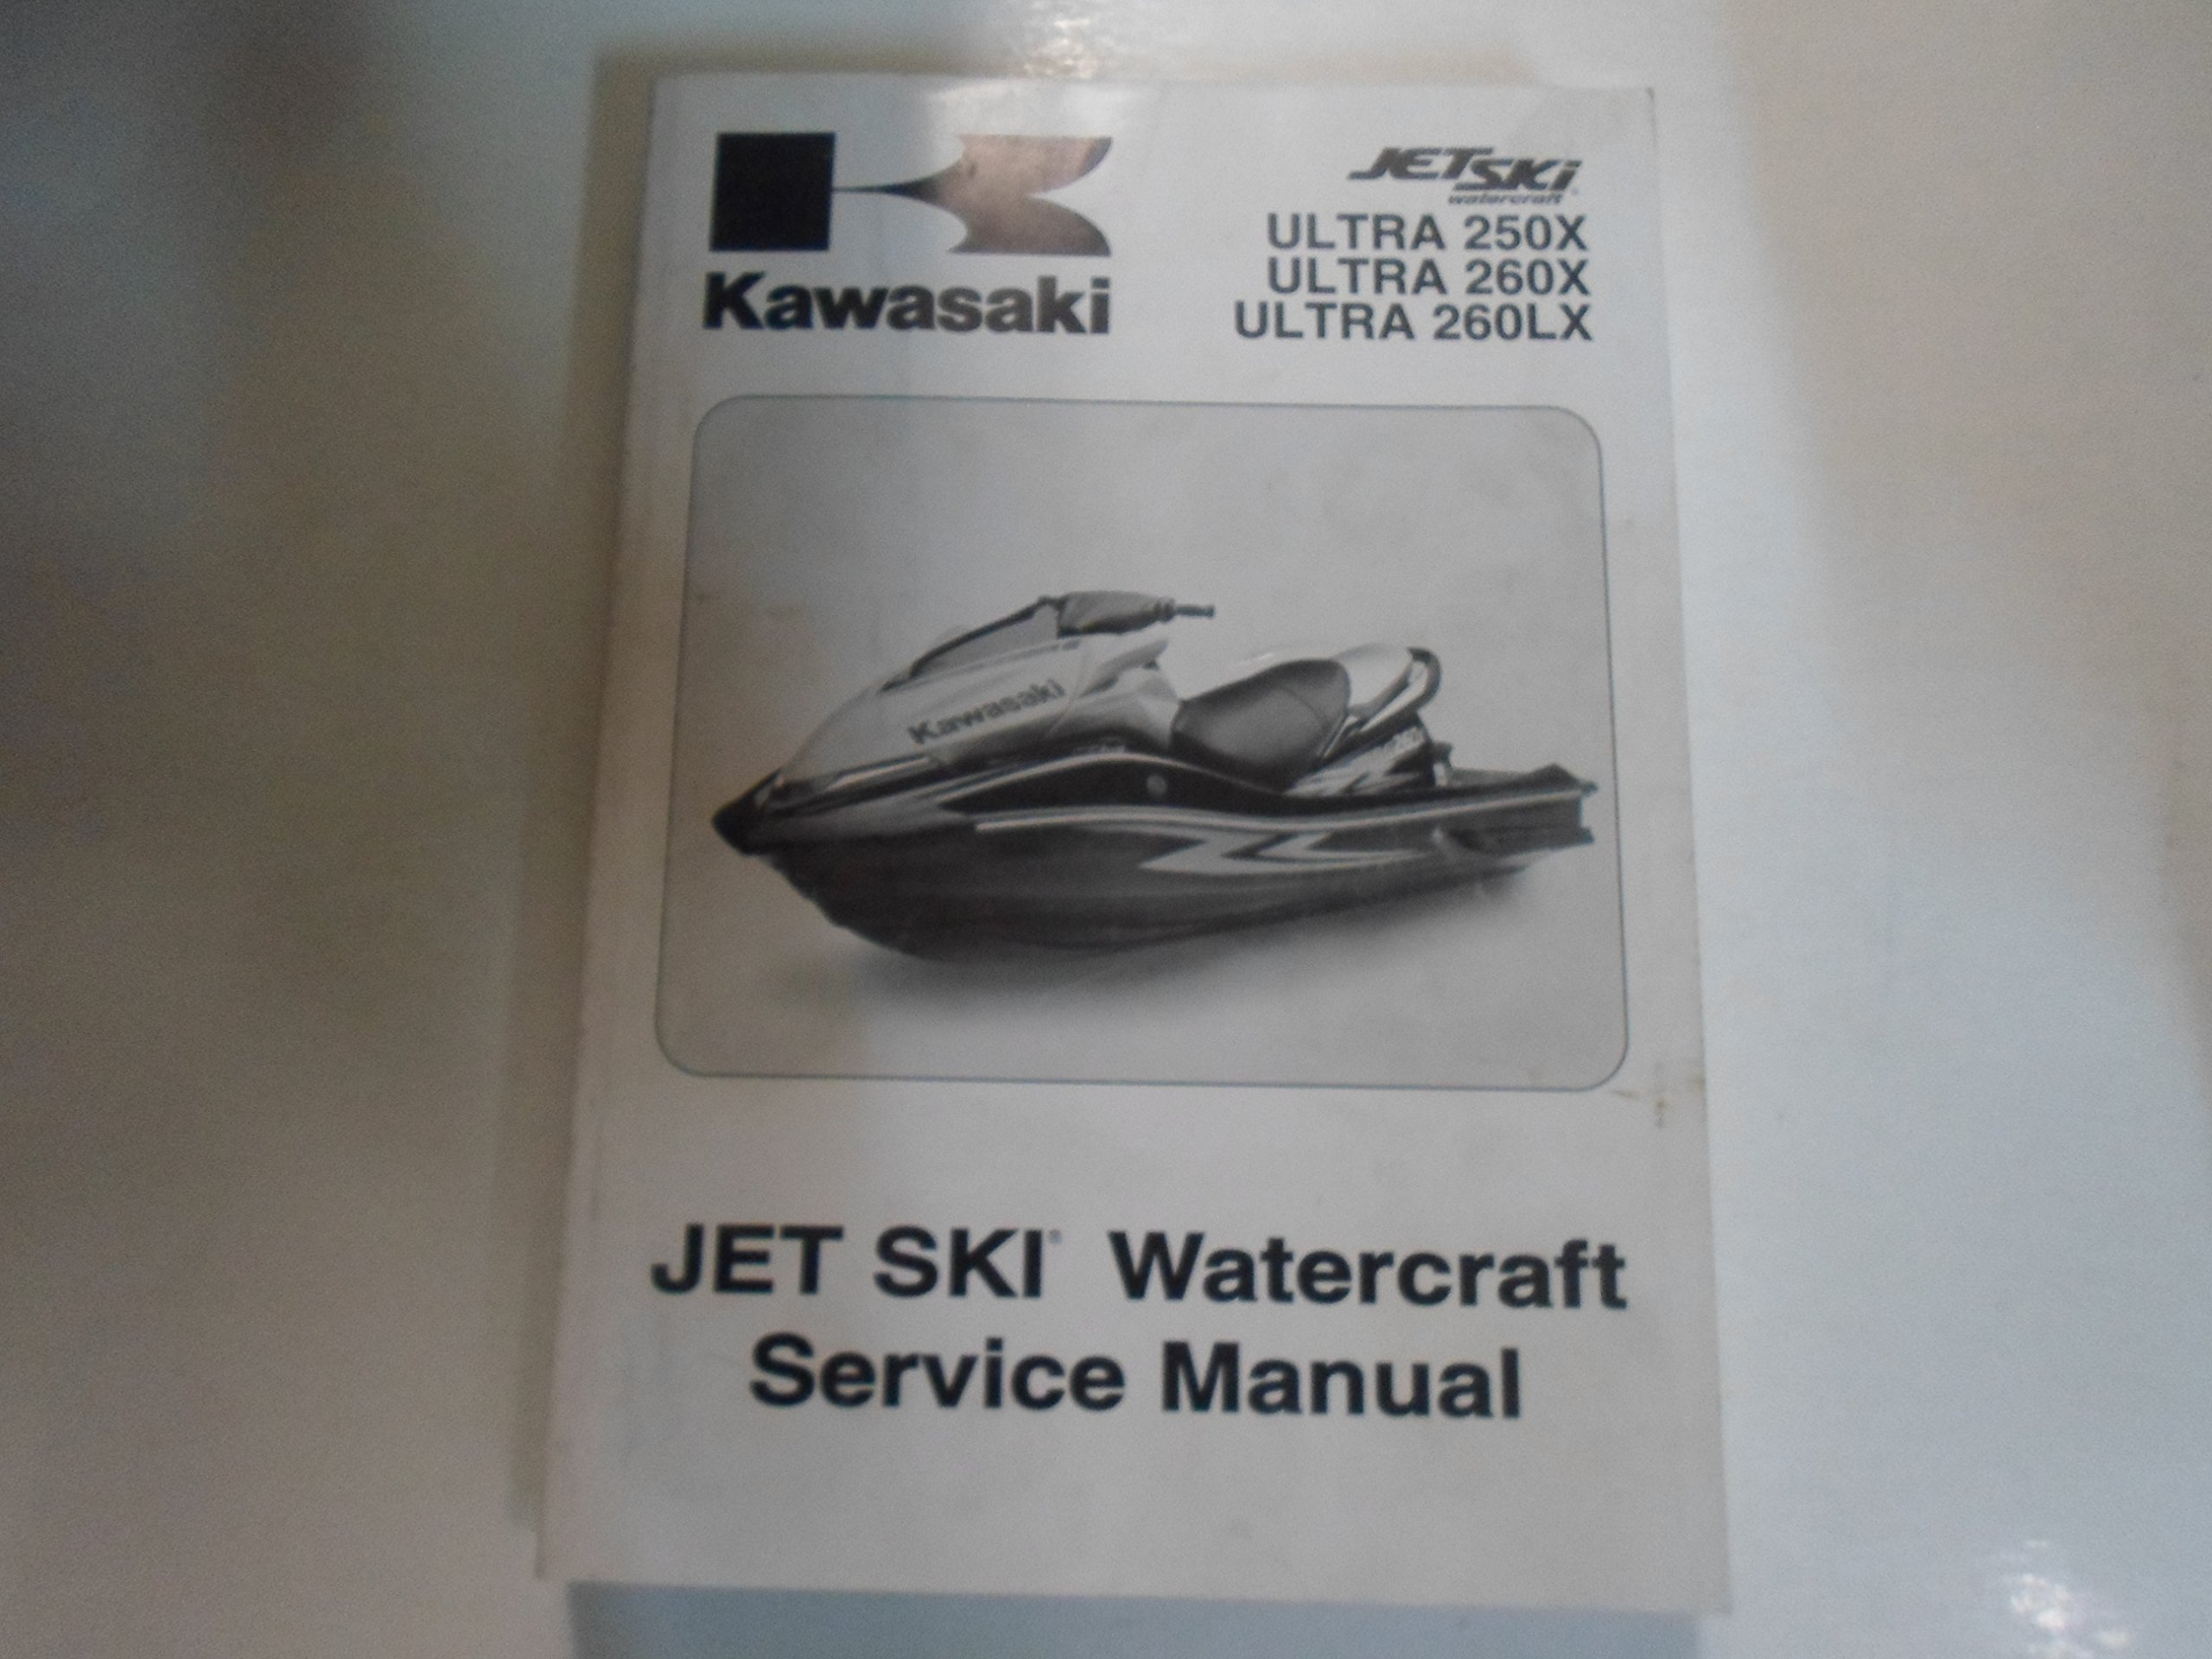 2007 2009 kawasaki ultra 250x 260x 260lx jet ski watercraft service rh amazon com kawasaki ultra 250x service manual download kawasaki ultra 260x service manual